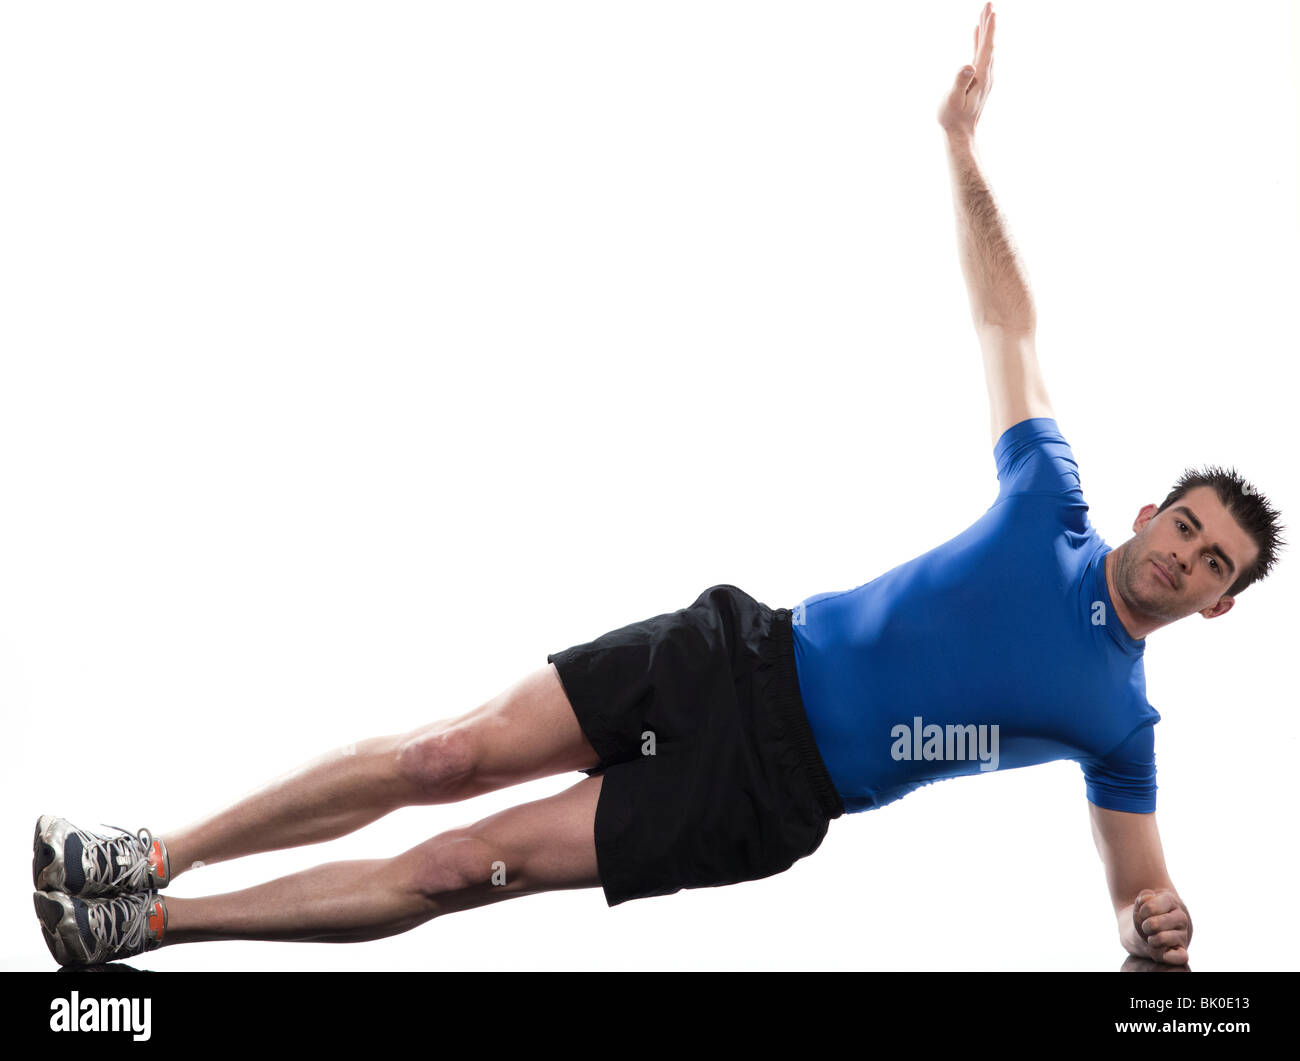 man lying on side  Abdominals workout posture on studio isolated  white background - Stock Image